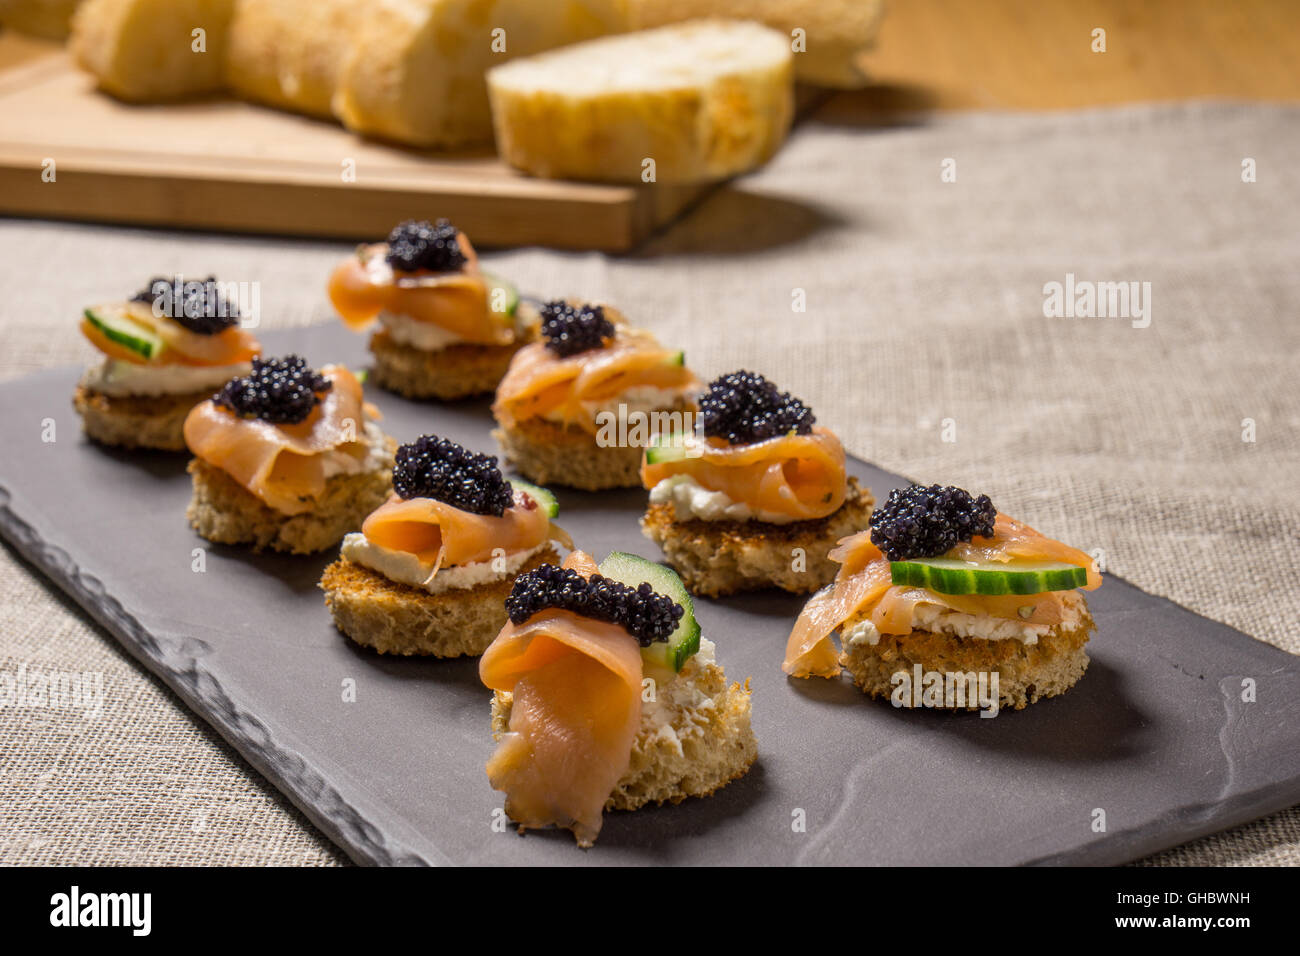 Smoked Salmon Appetizer with Cream Cheese and Caviar - Stock Image